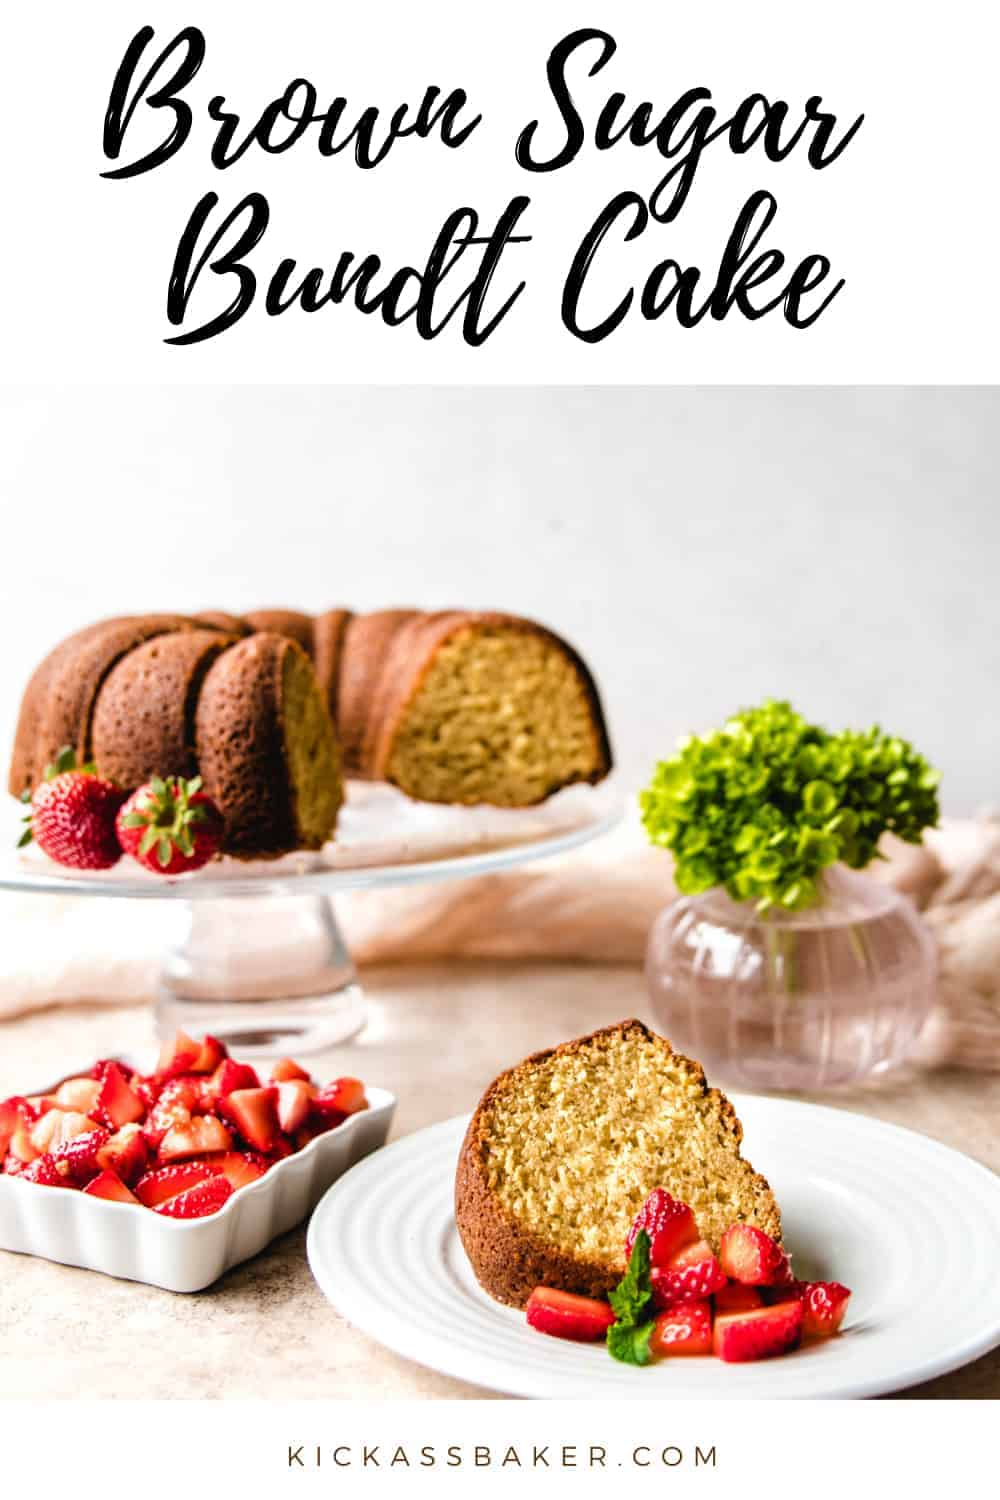 Brown Sugar Bundt Cake with Macerated Strawberries | kickassbaker.com pin for pinterest with text overlay